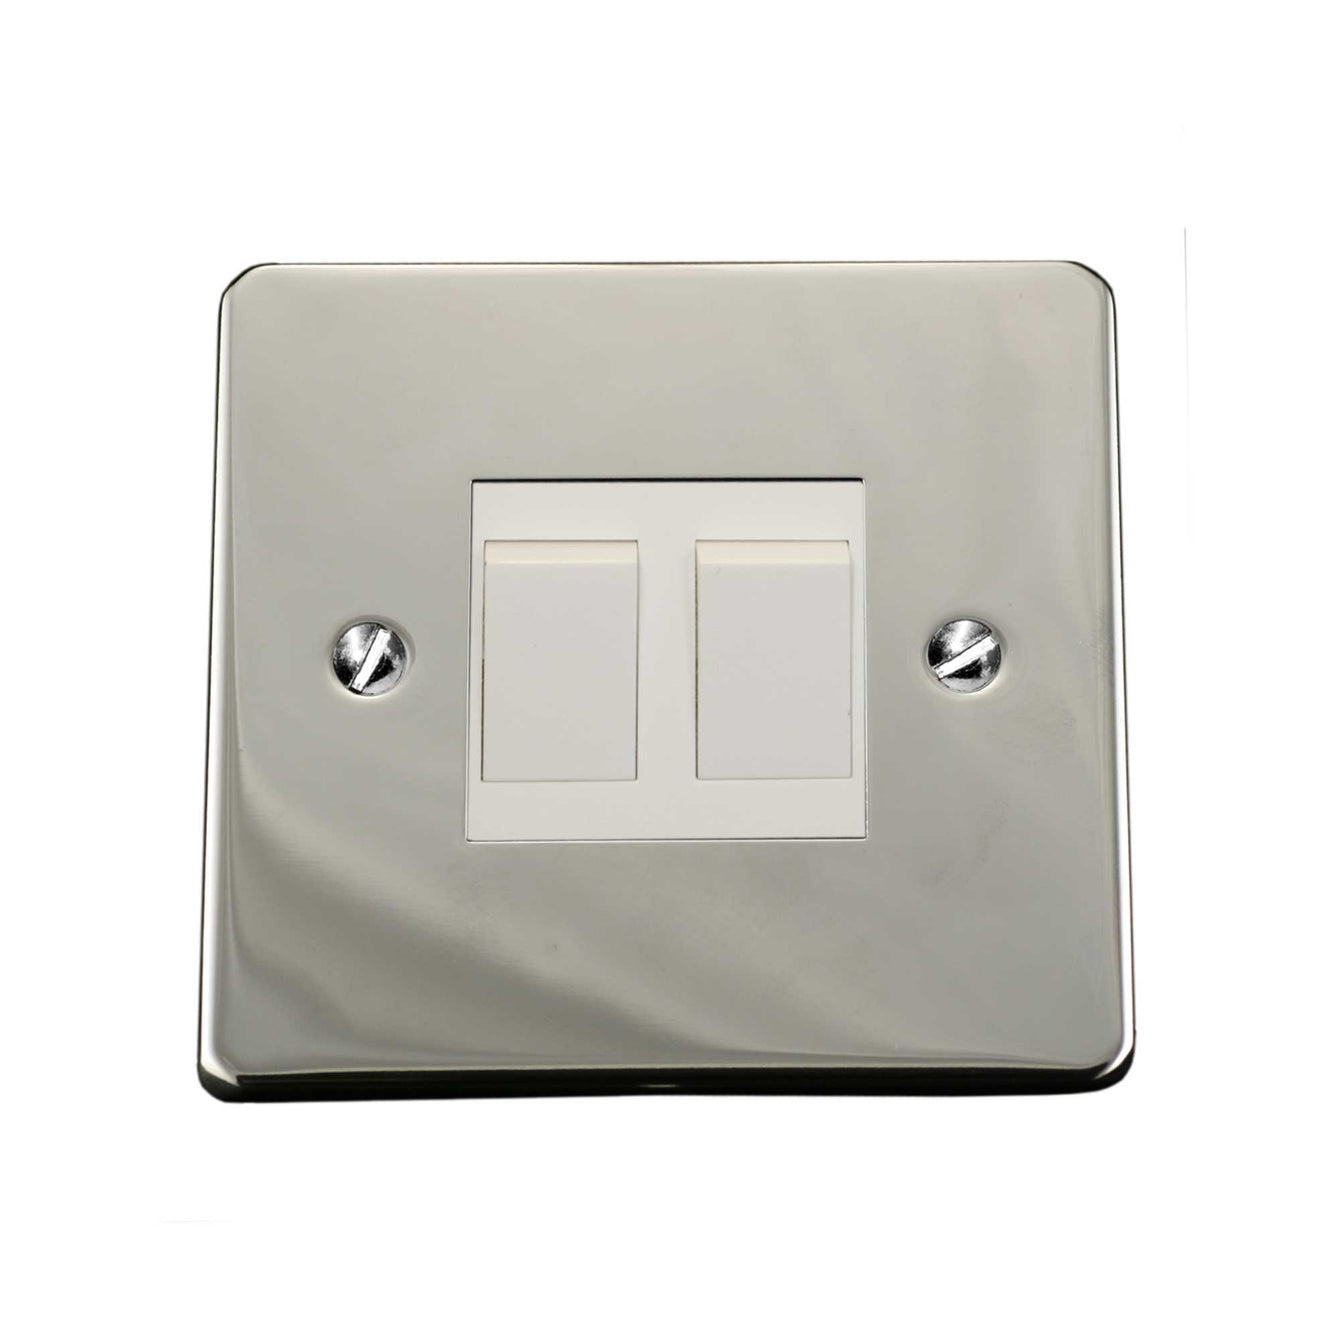 ElekTek Light Switch Conversion Cover Plate Double Victorian - Buy It Better Dawn Blue